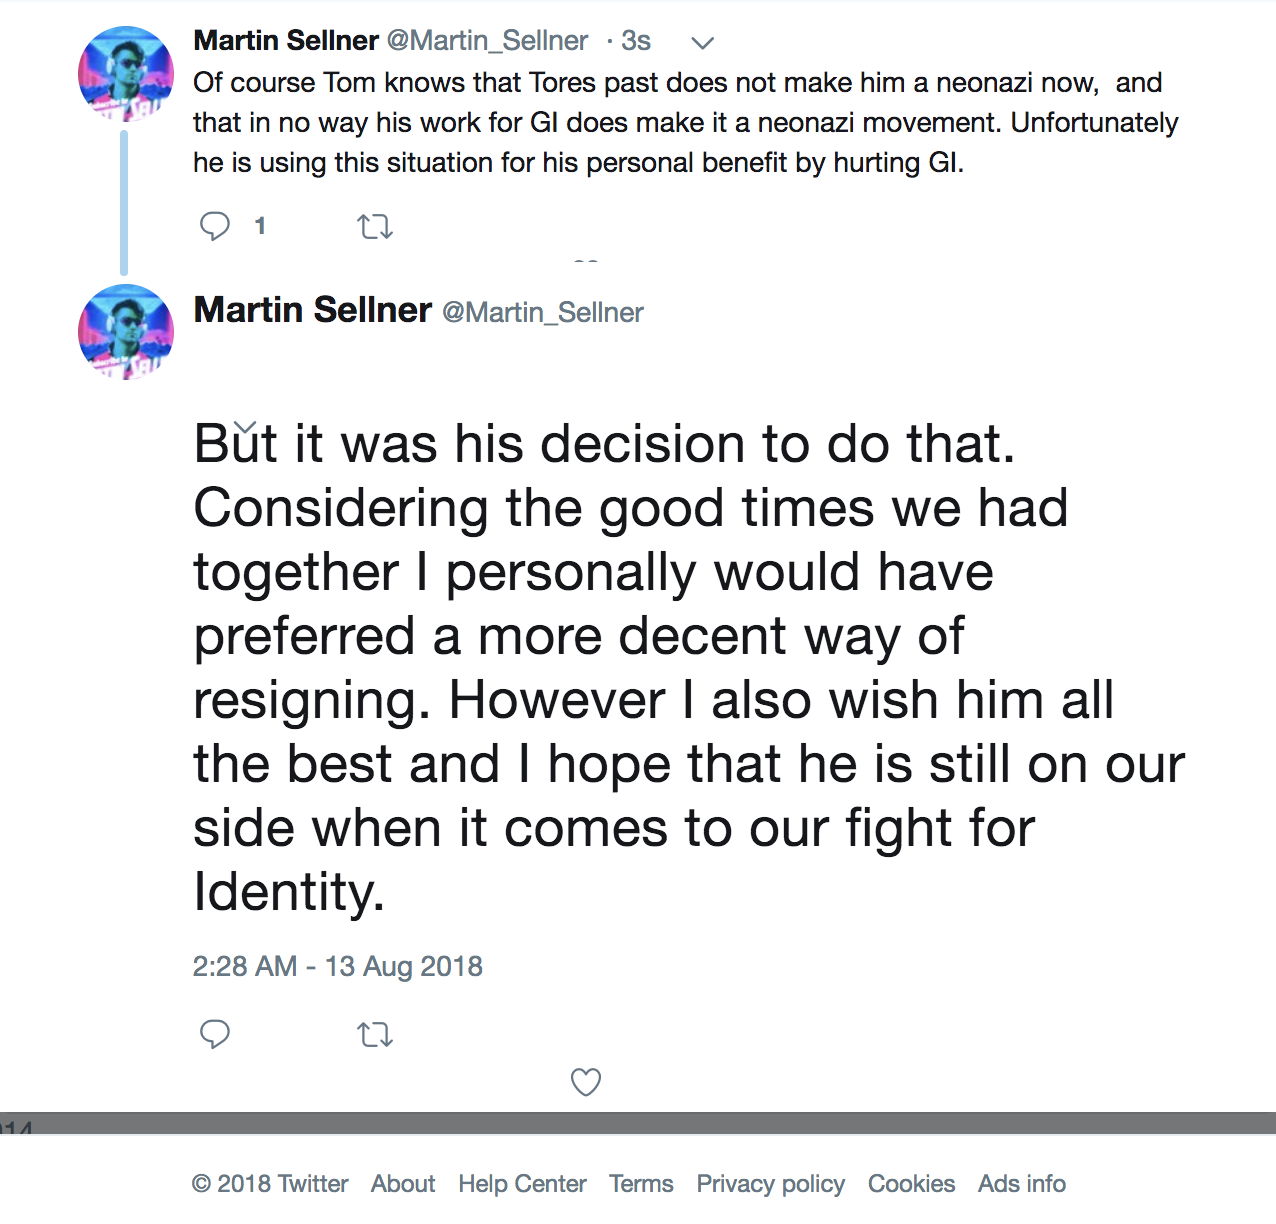 Martin Sellner tweet